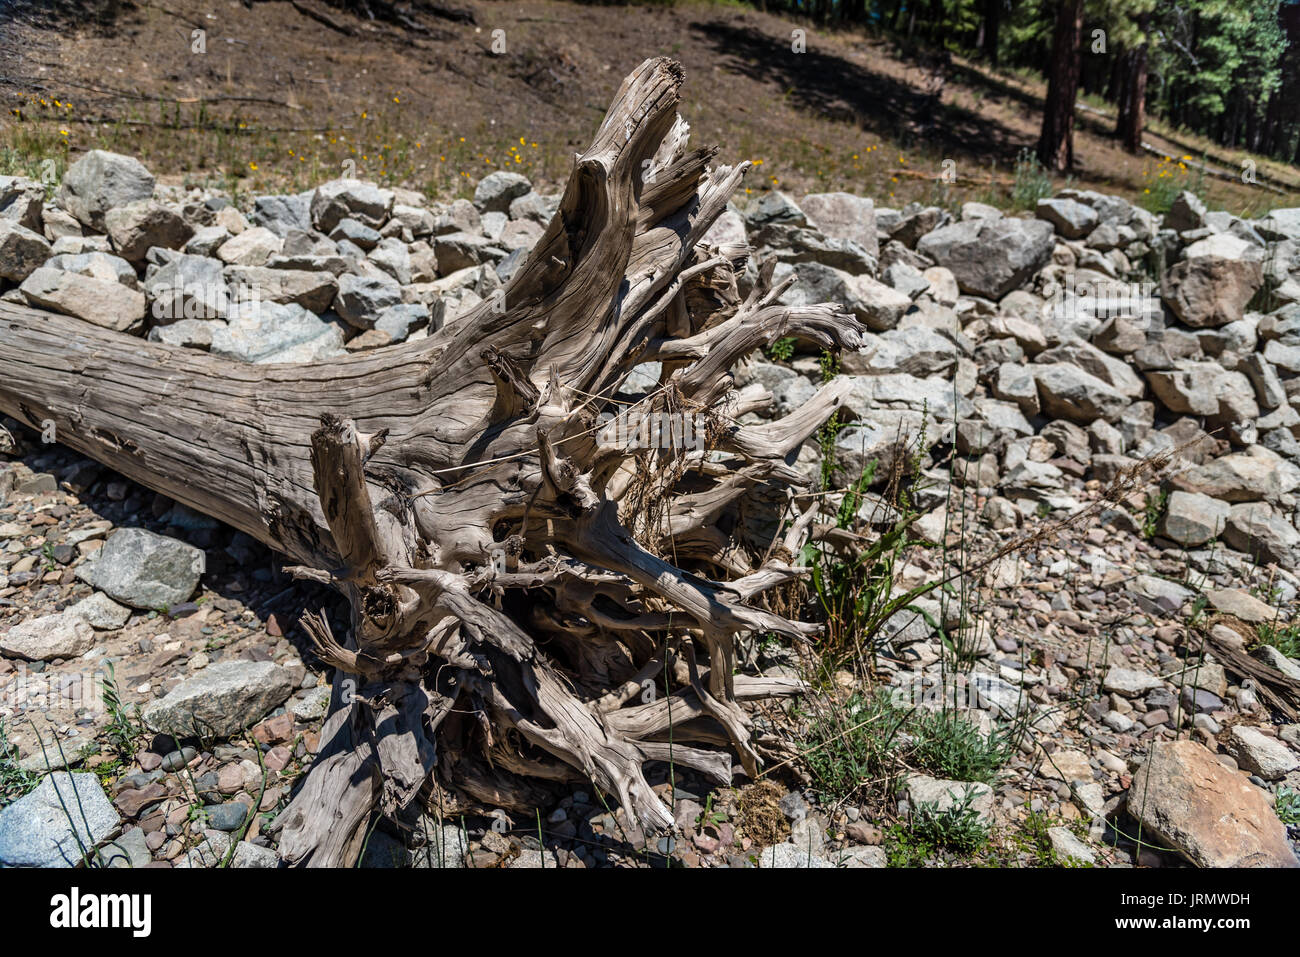 Driftwood on the banks of the Pend Oreille River. - Stock Image